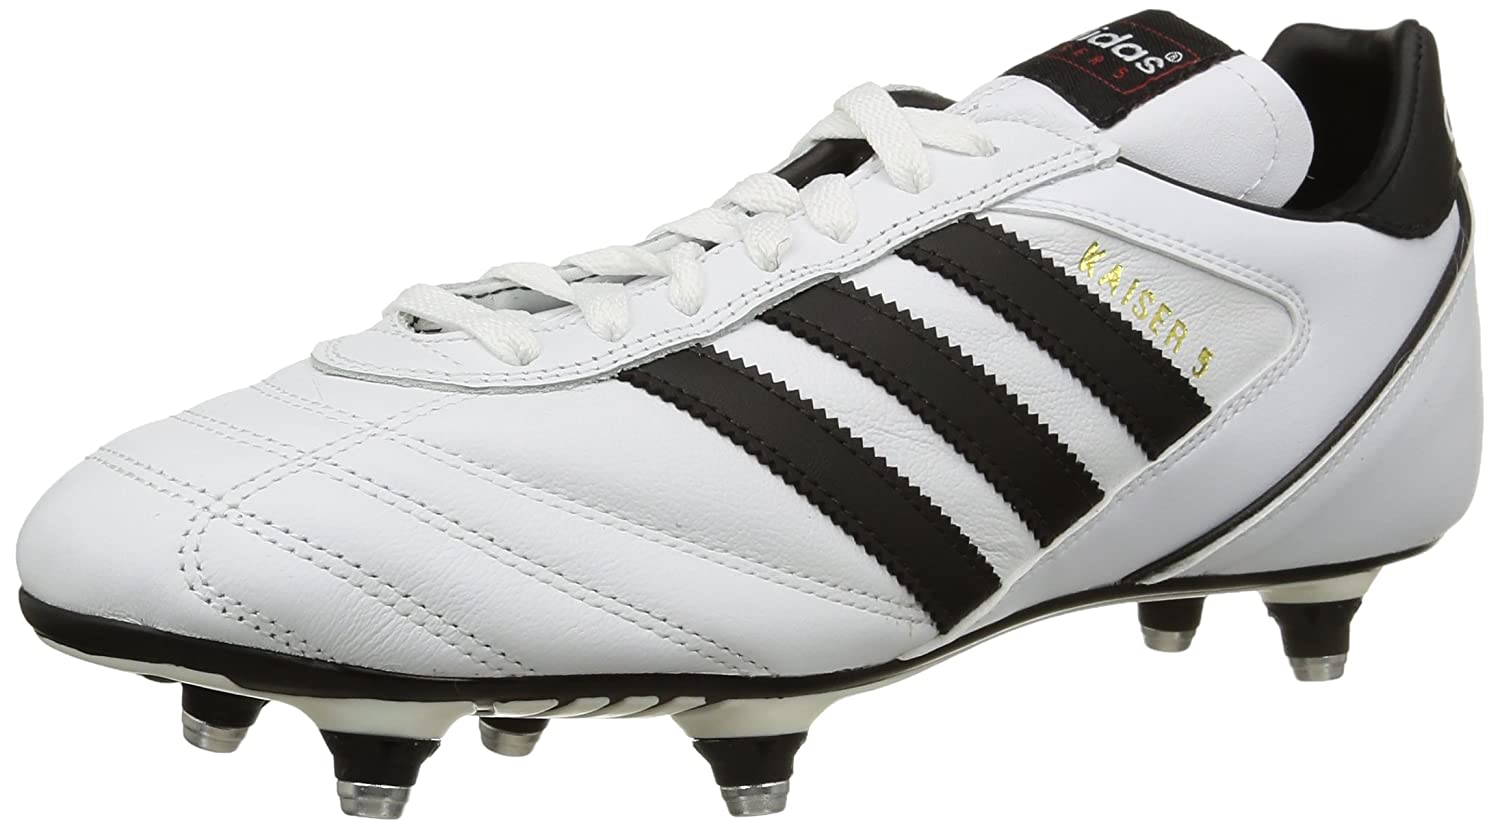 6157f0391548 adidas Men s Kaiser 5 Cup Football Boots  Amazon.co.uk  Shoes   Bags